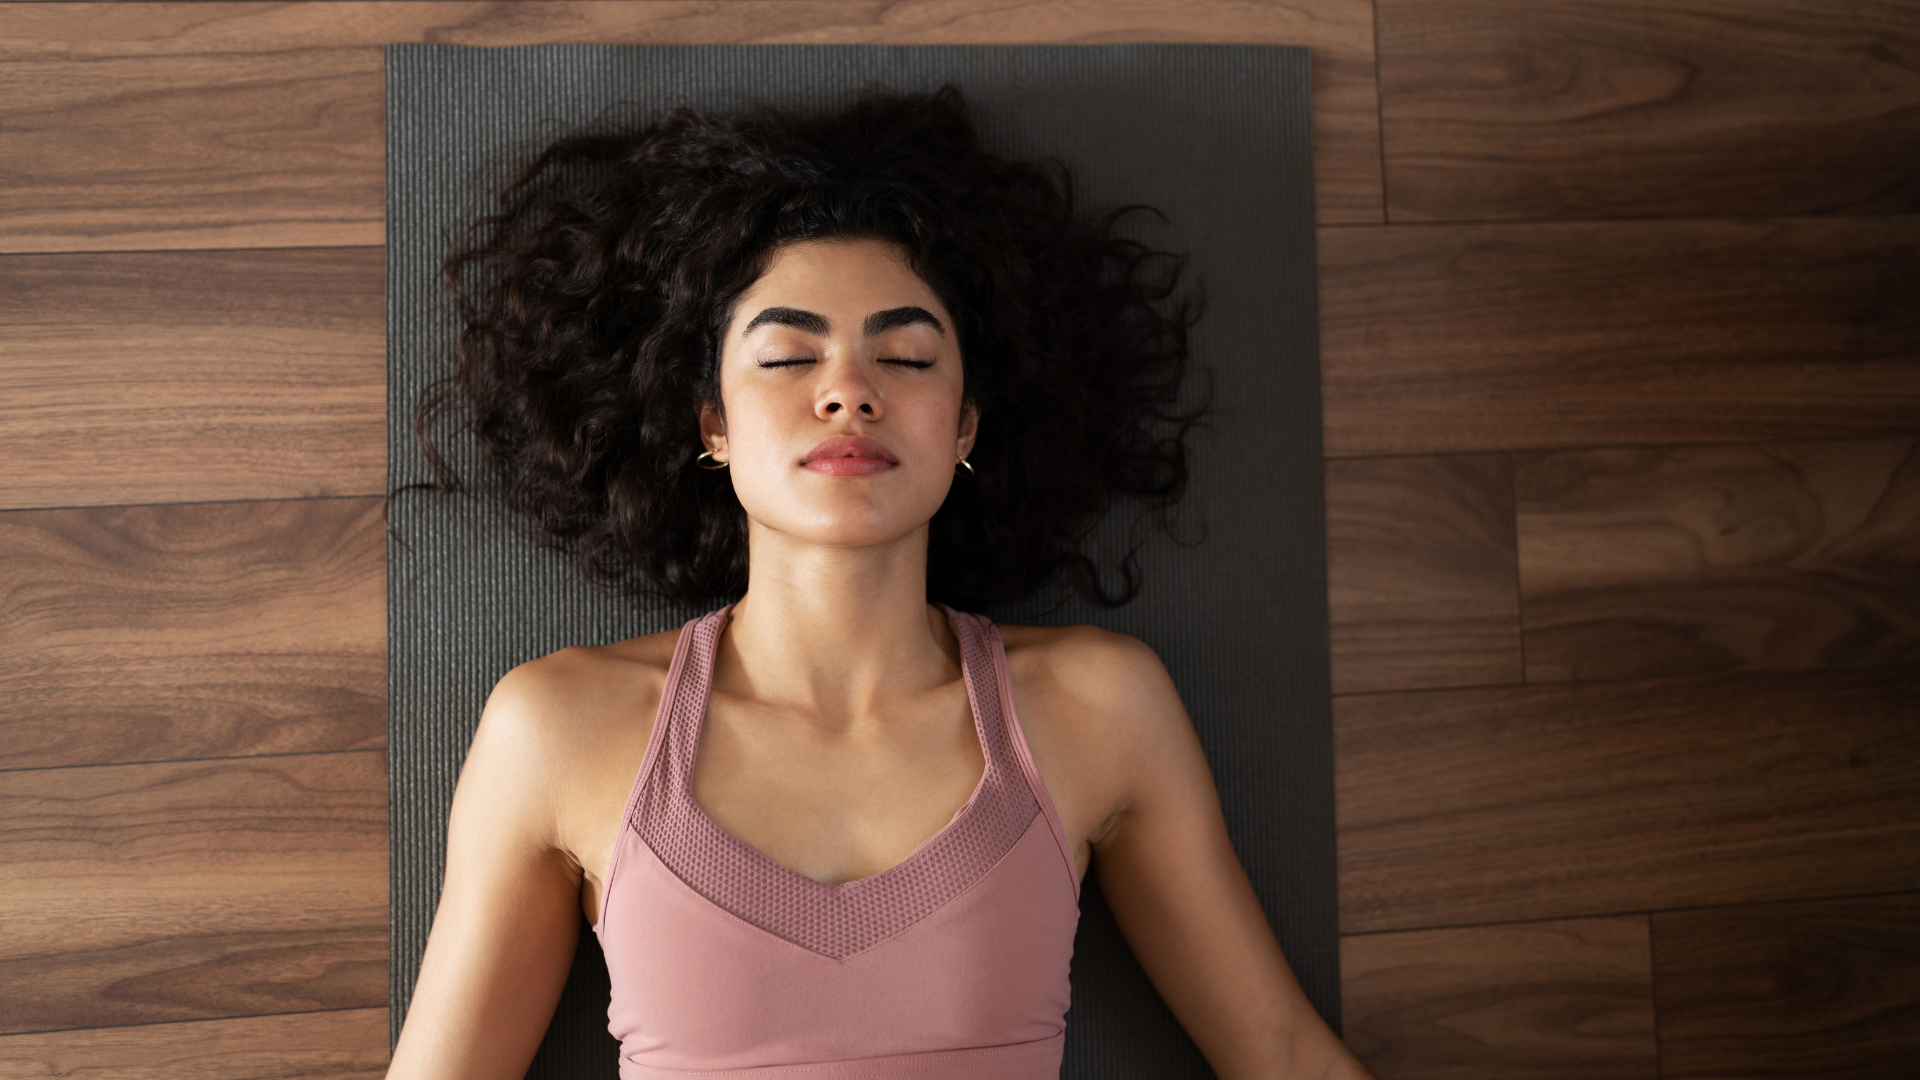 Yoga student practicing Relaxation Pose (Savasana) to reconnect with the self and find inner peace